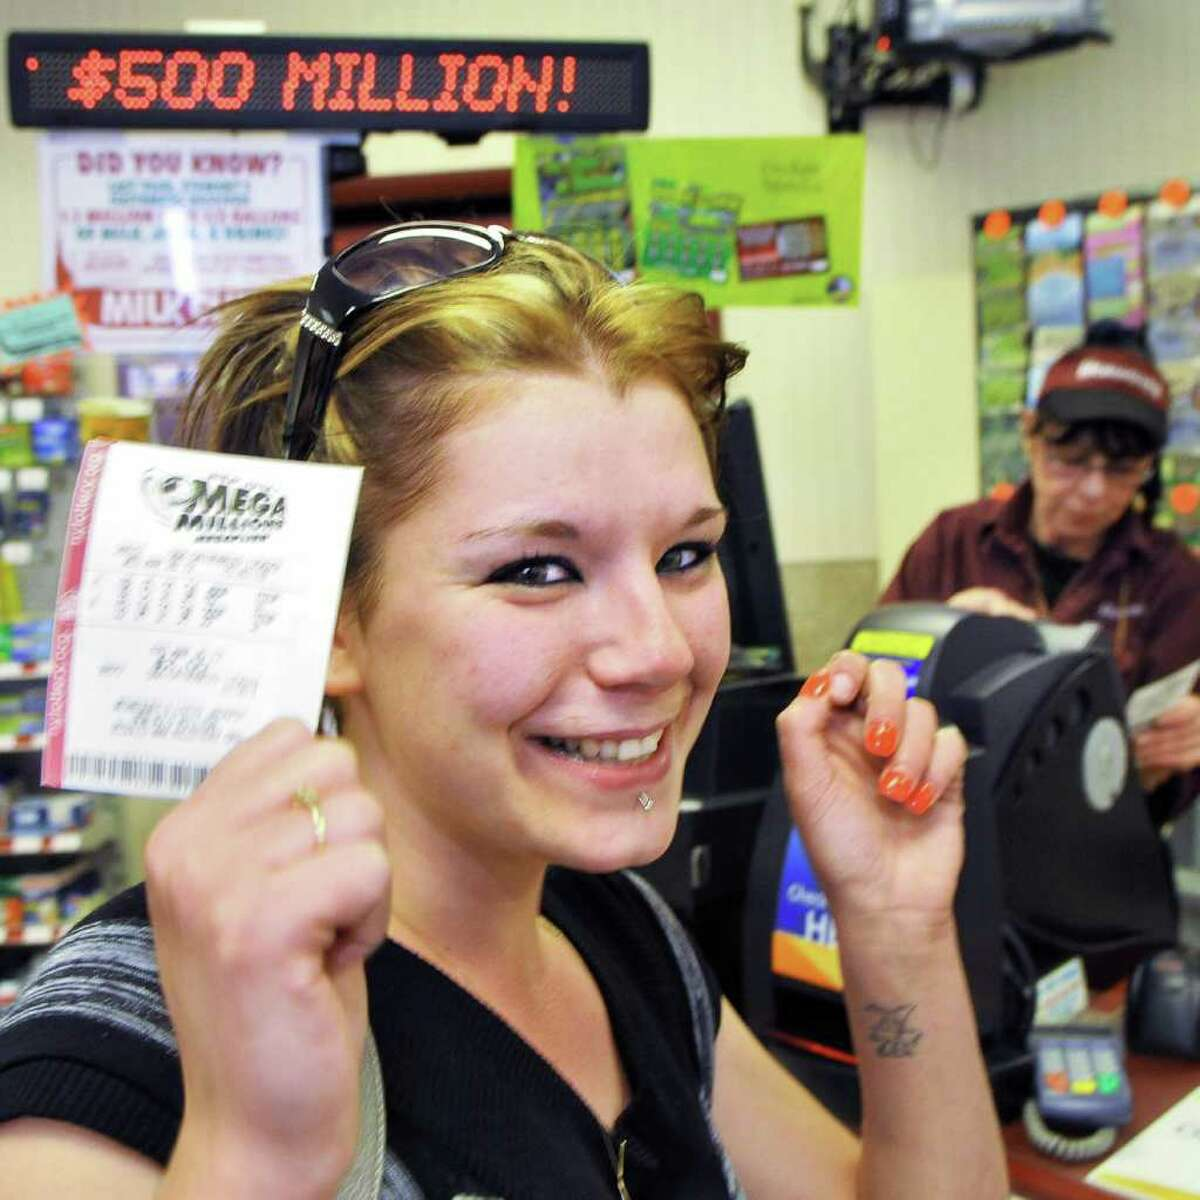 Jamie Mobeus of Colonie buys her Mega Millions ticket at a Stewarts store in Saratoga Springs Wednesday March 28, 2012. She hopes to spoil her son with winnings,